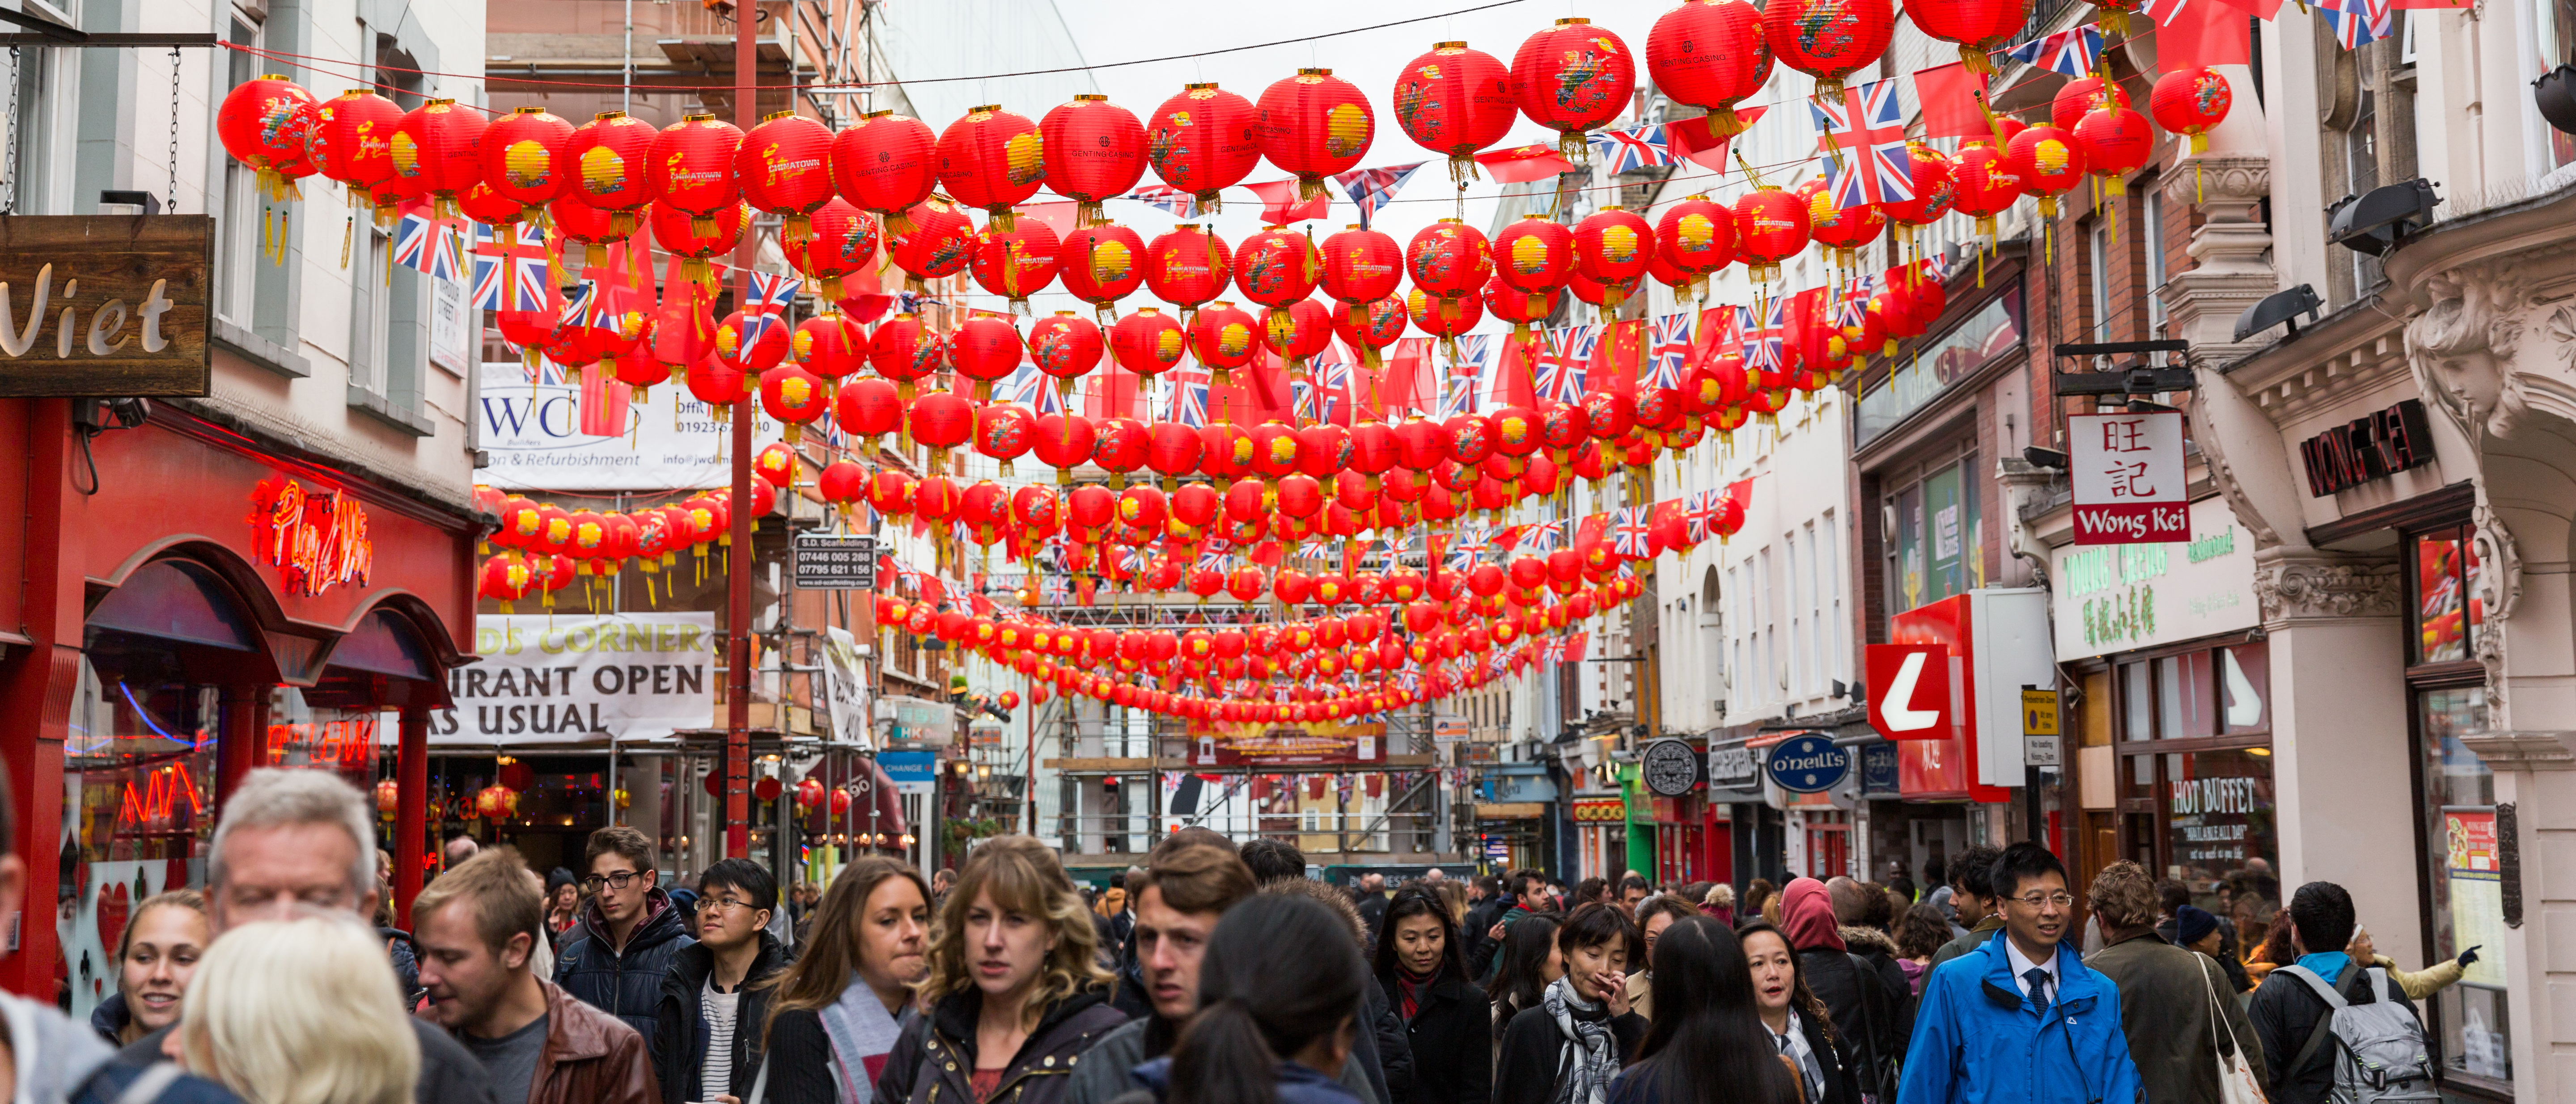 Chinese lanterns and flags, with UK flags, in London's Chinatown